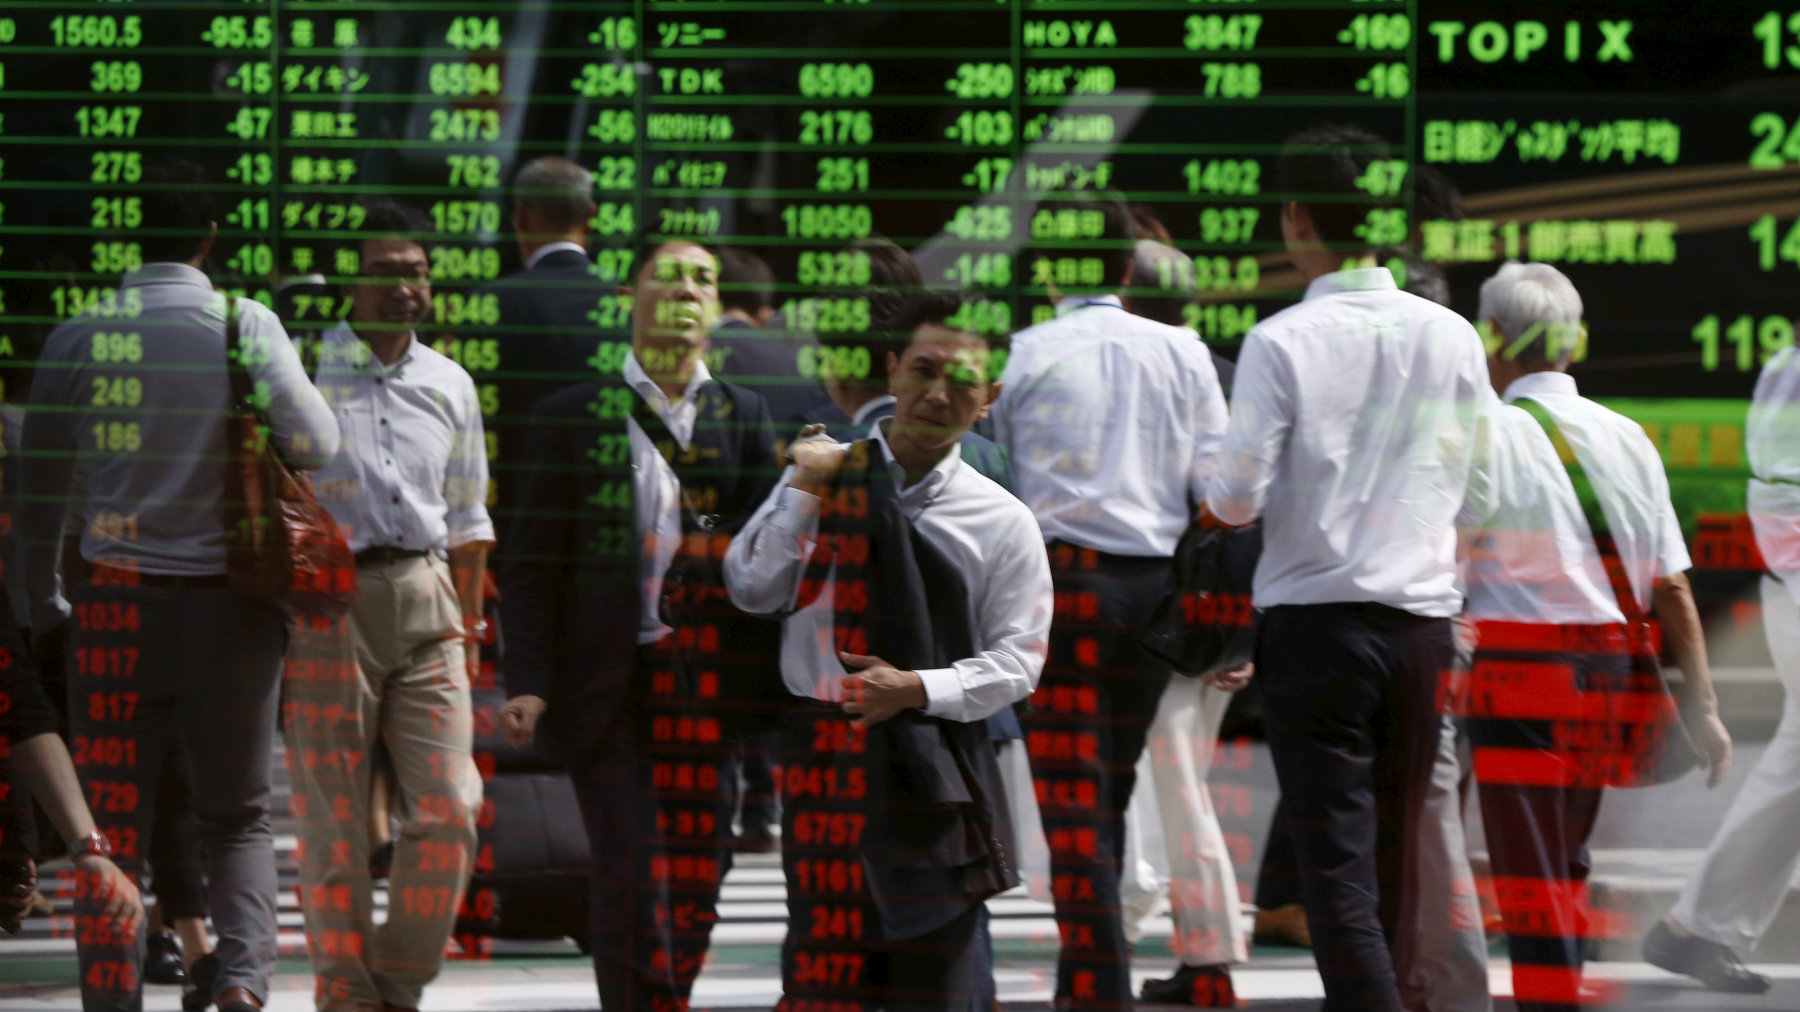 Passersby are reflected on a stock quotation board at a brokerage in Tokyo, Japan, September 29, 2015. Asian shares skidded to 3-1/2-year lows and the dollar sagged on Tuesday, pulled down by a sharp losses on Wall Street after weak Chinese data rekindled worries about its fragile economy. REUTERS/Issei Kato TPX IMAGES OF THE DAY